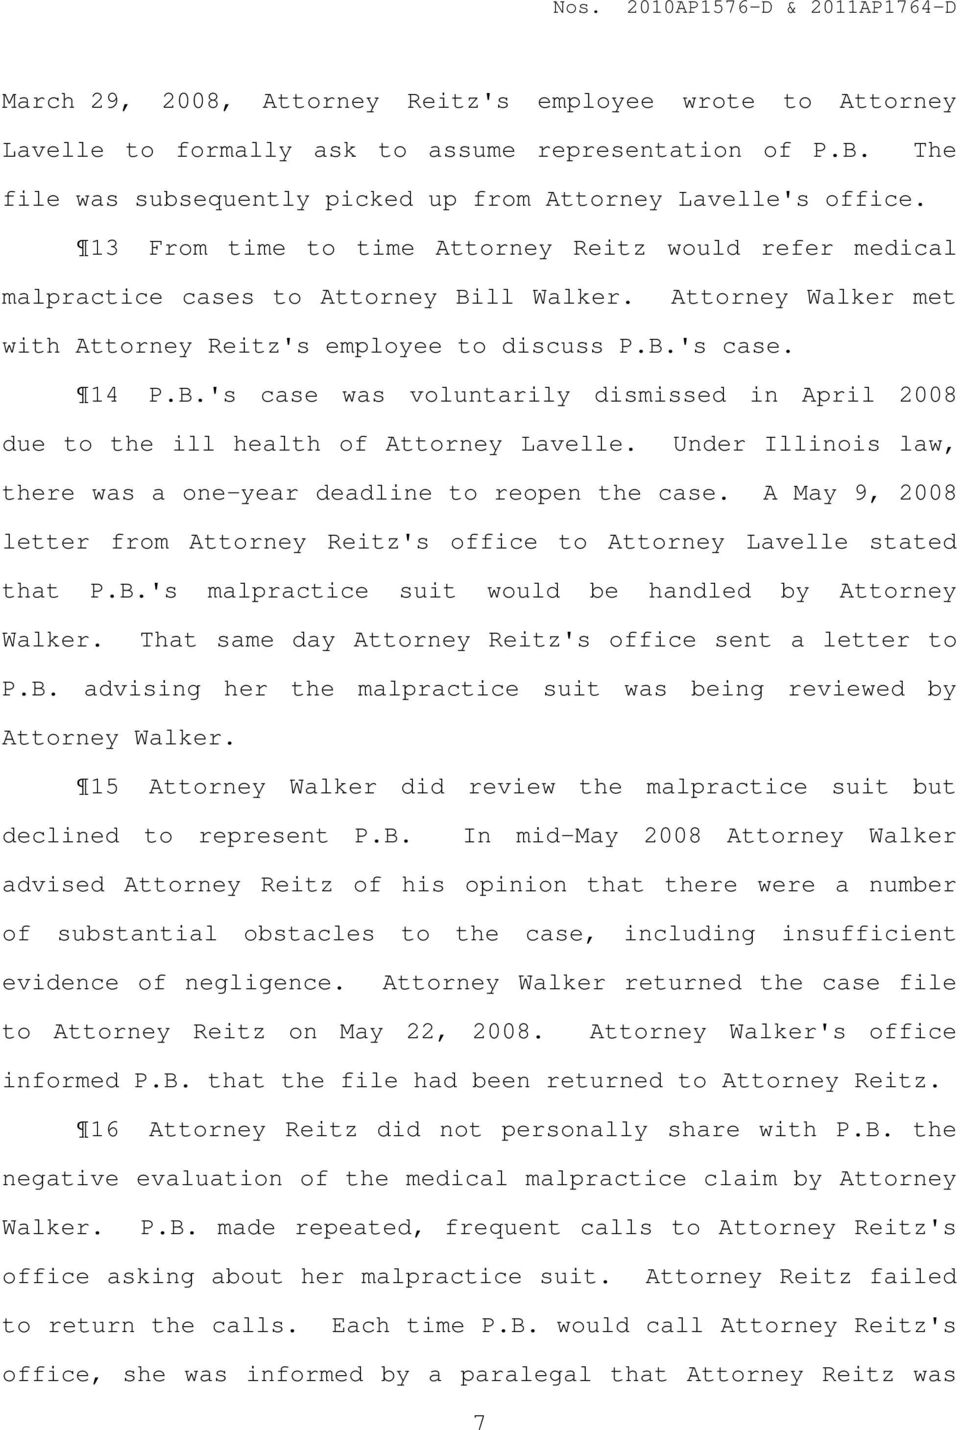 Under Illinois law, there was a one-year deadline to reopen the case. A May 9, 2008 letter from Attorney Reitz's office to Attorney Lavelle stated that P.B.